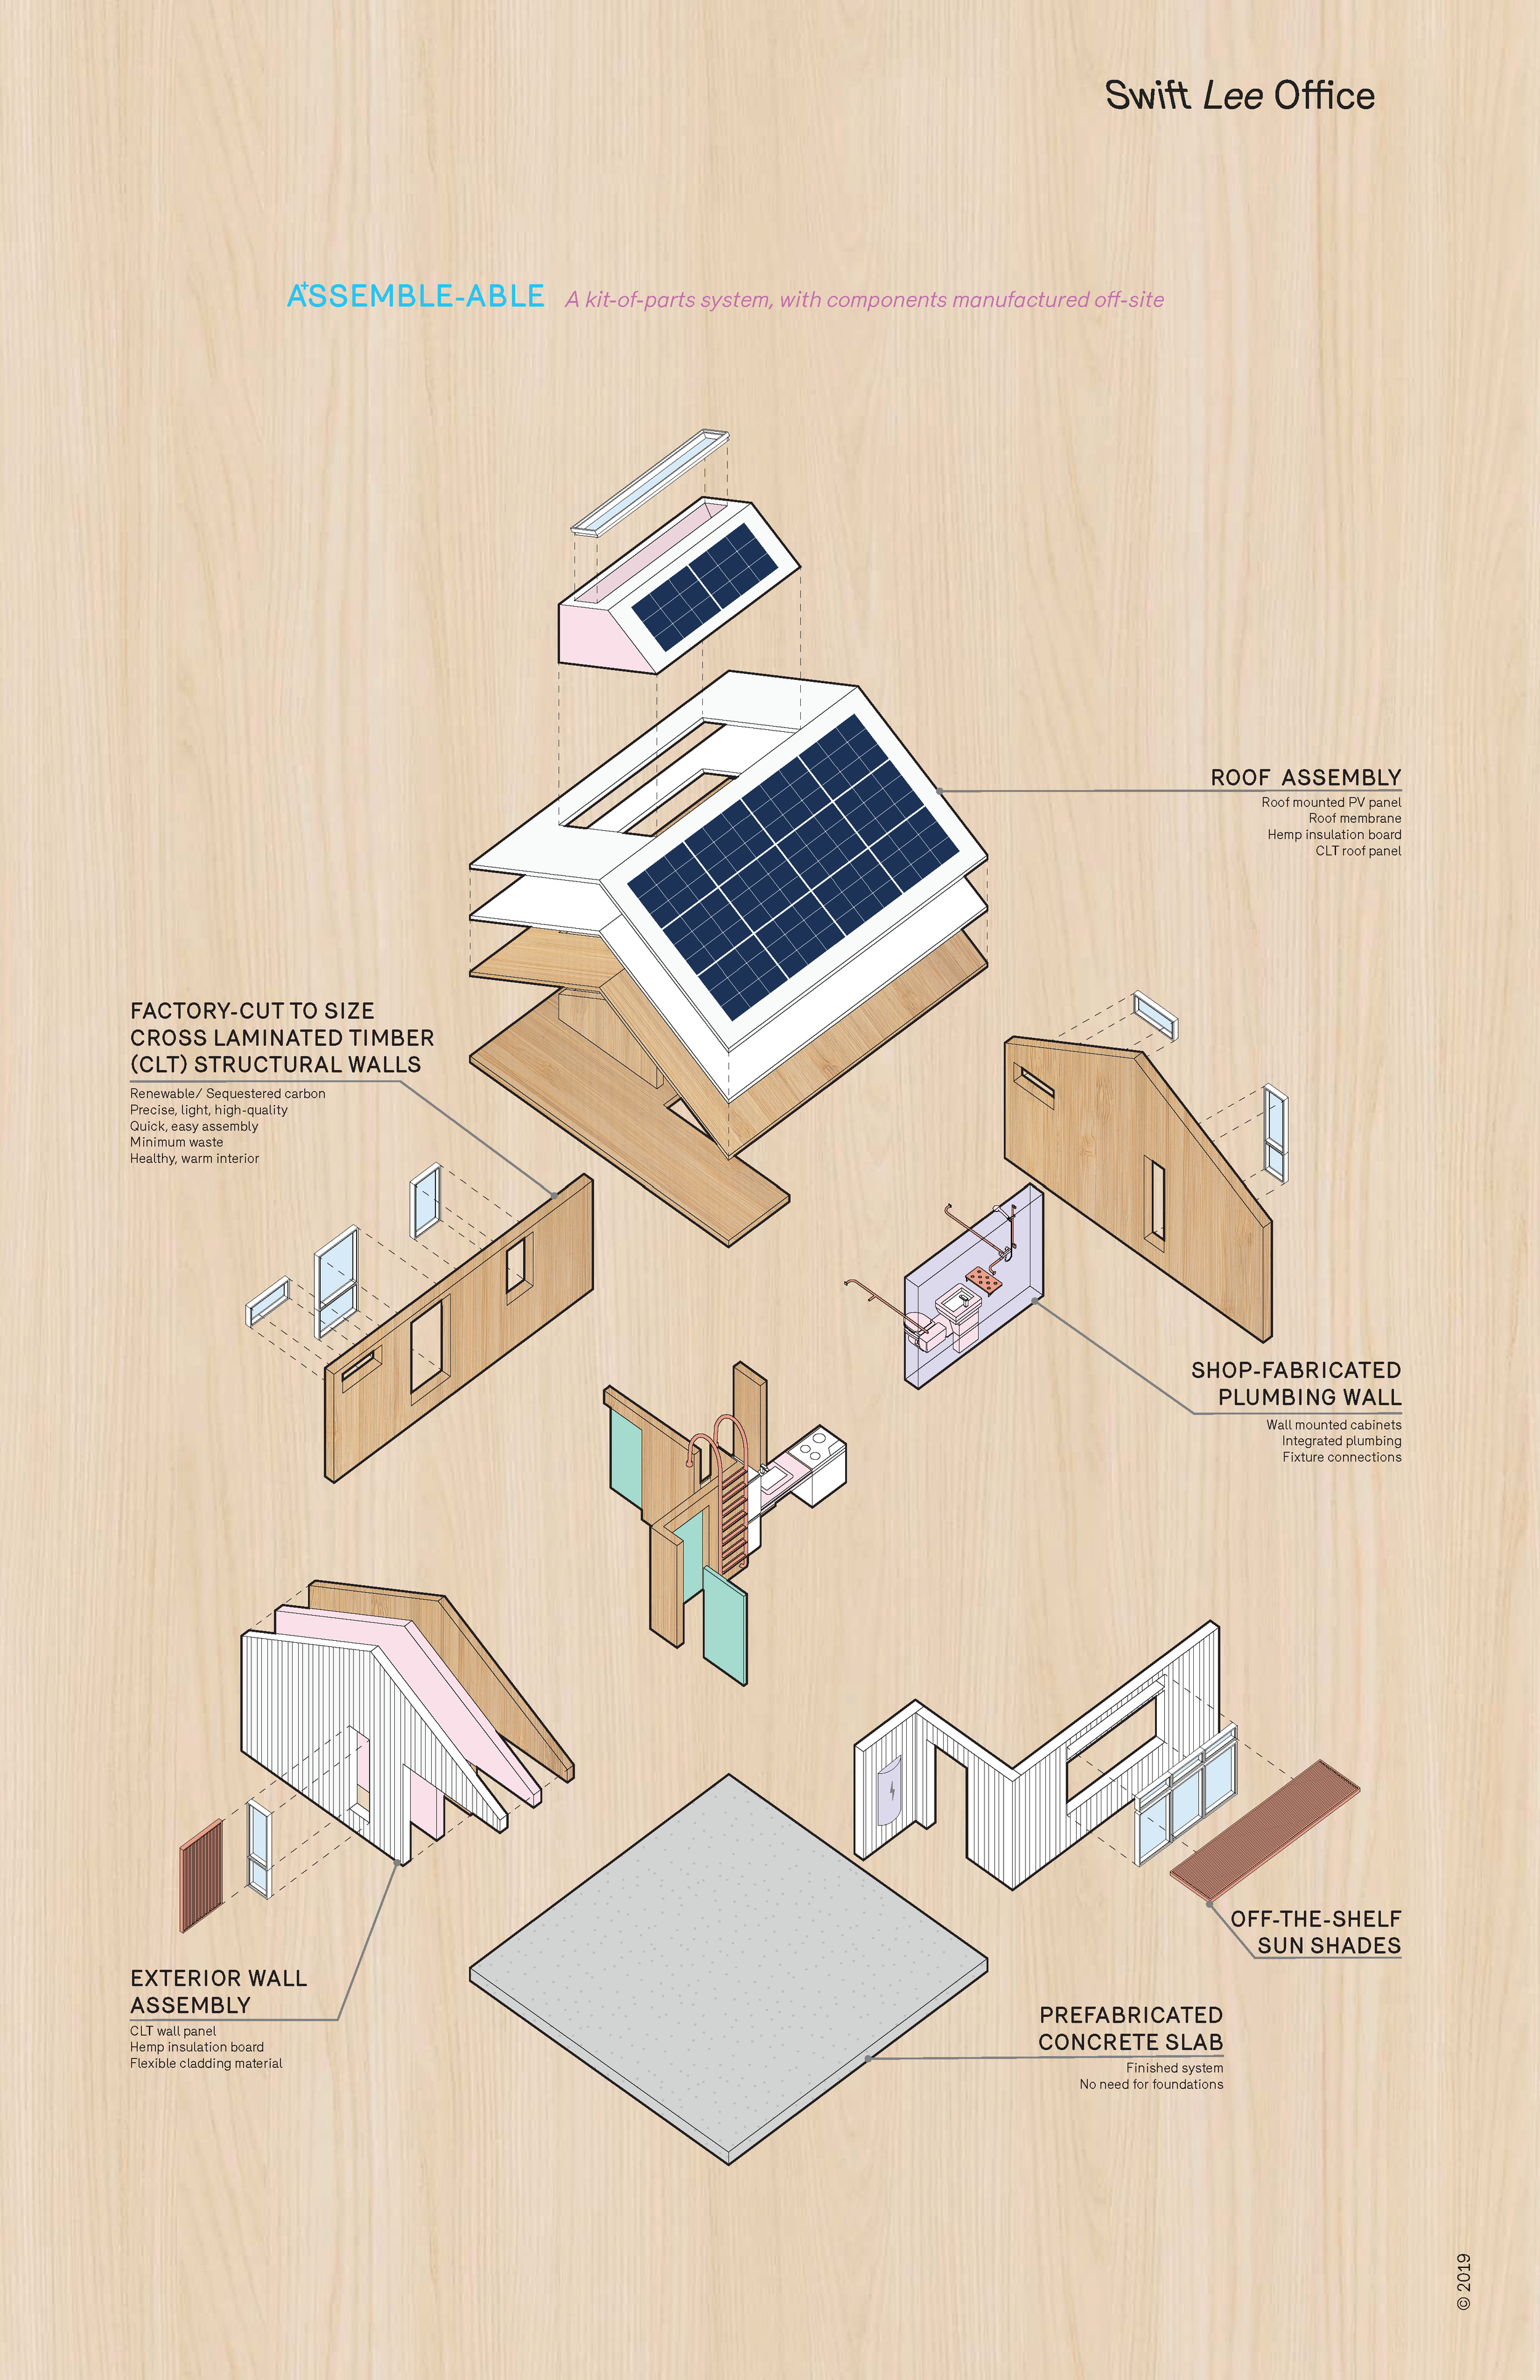 19.07.11_A+DU BOARDS_FINAL_11X17_WOOD_600DPI_Page_2.png